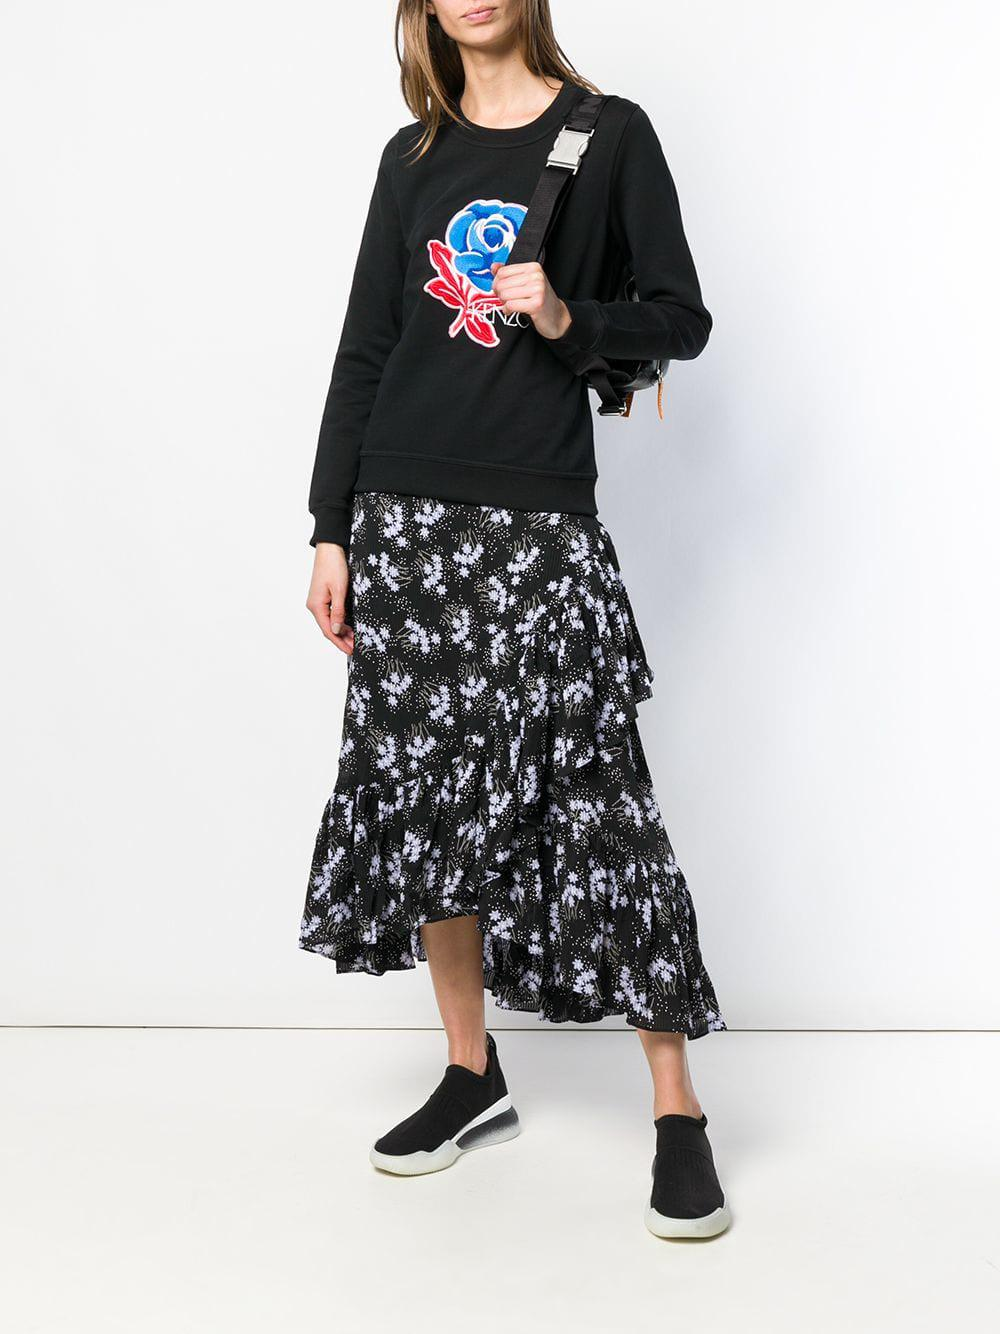 9634b3add6 KENZO Rose Embroidered Sweatshirt in Black - Lyst